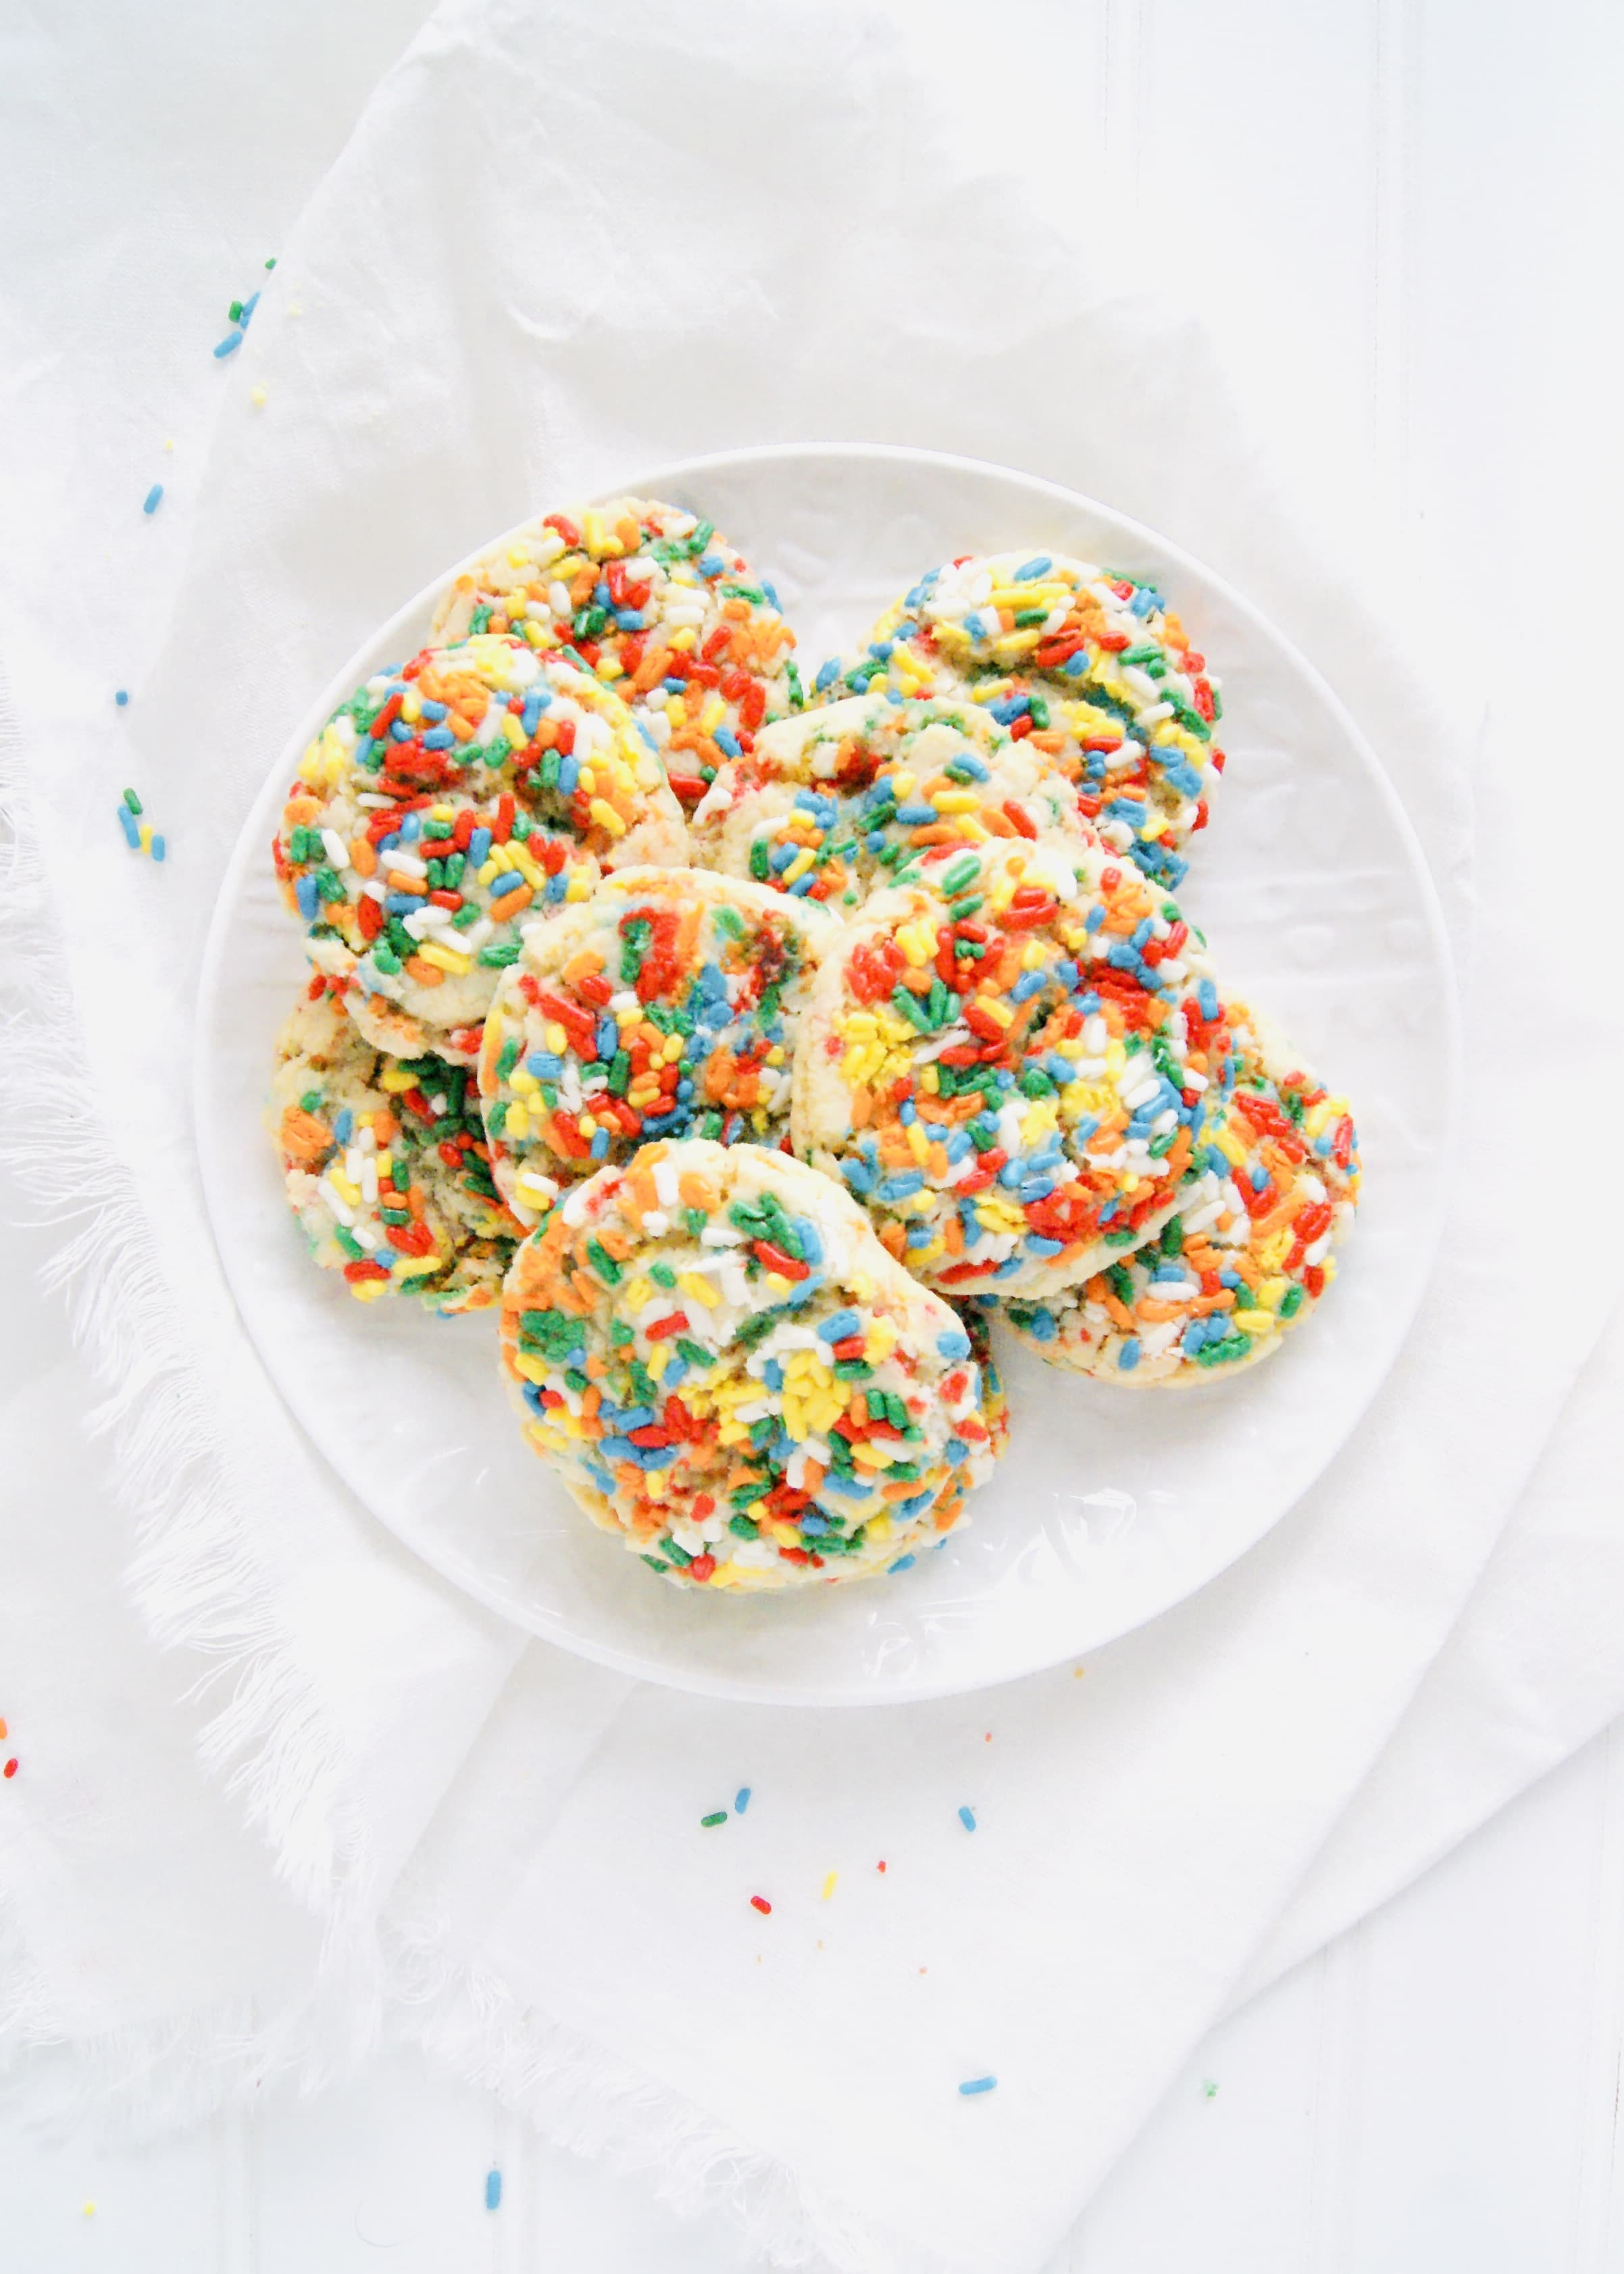 Drop Sugar Cookies that are soft, chewy and filled with lots of sprinkles. No rolling or cutting. Just roll the simple cookie dough into balls and bake. Recipe at KathleensCravings.com #sugarcookies #dropsugarcookies #holidaycookies #christmascookies #baking #holidaybaking #easysugarcookies #sprinkles